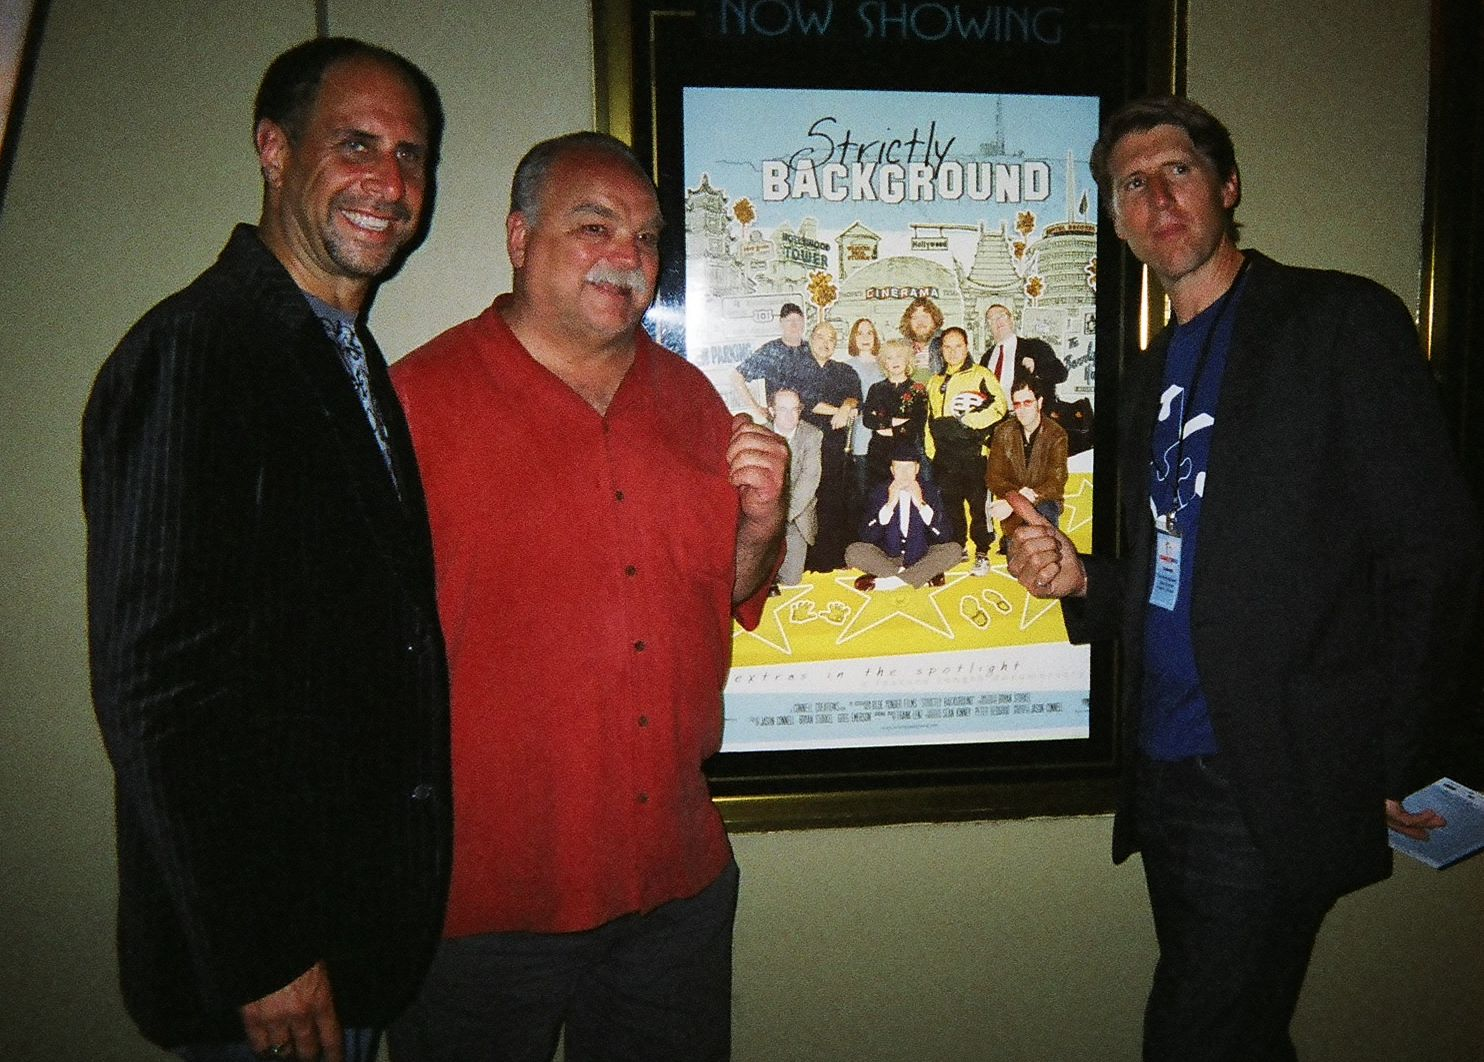 Jeff Olan, Jason Connell and Richard Riehle posing at ''Strictly Background'' poster